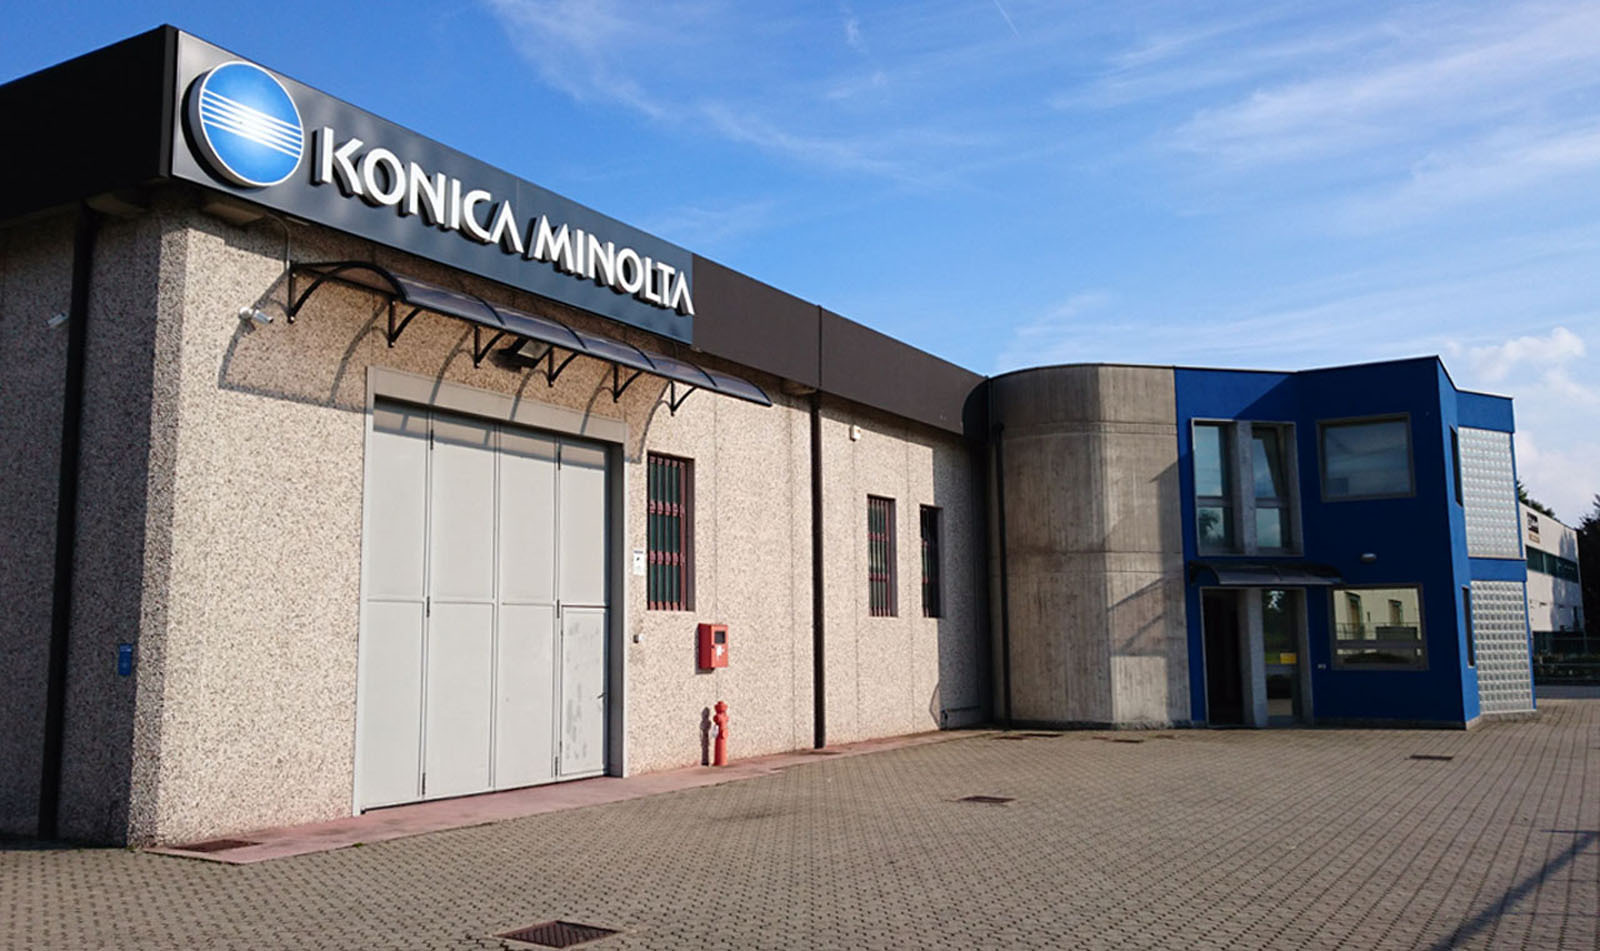 Konica Minolta Introduced An Innovative Textile Centre Of '€5 Million'